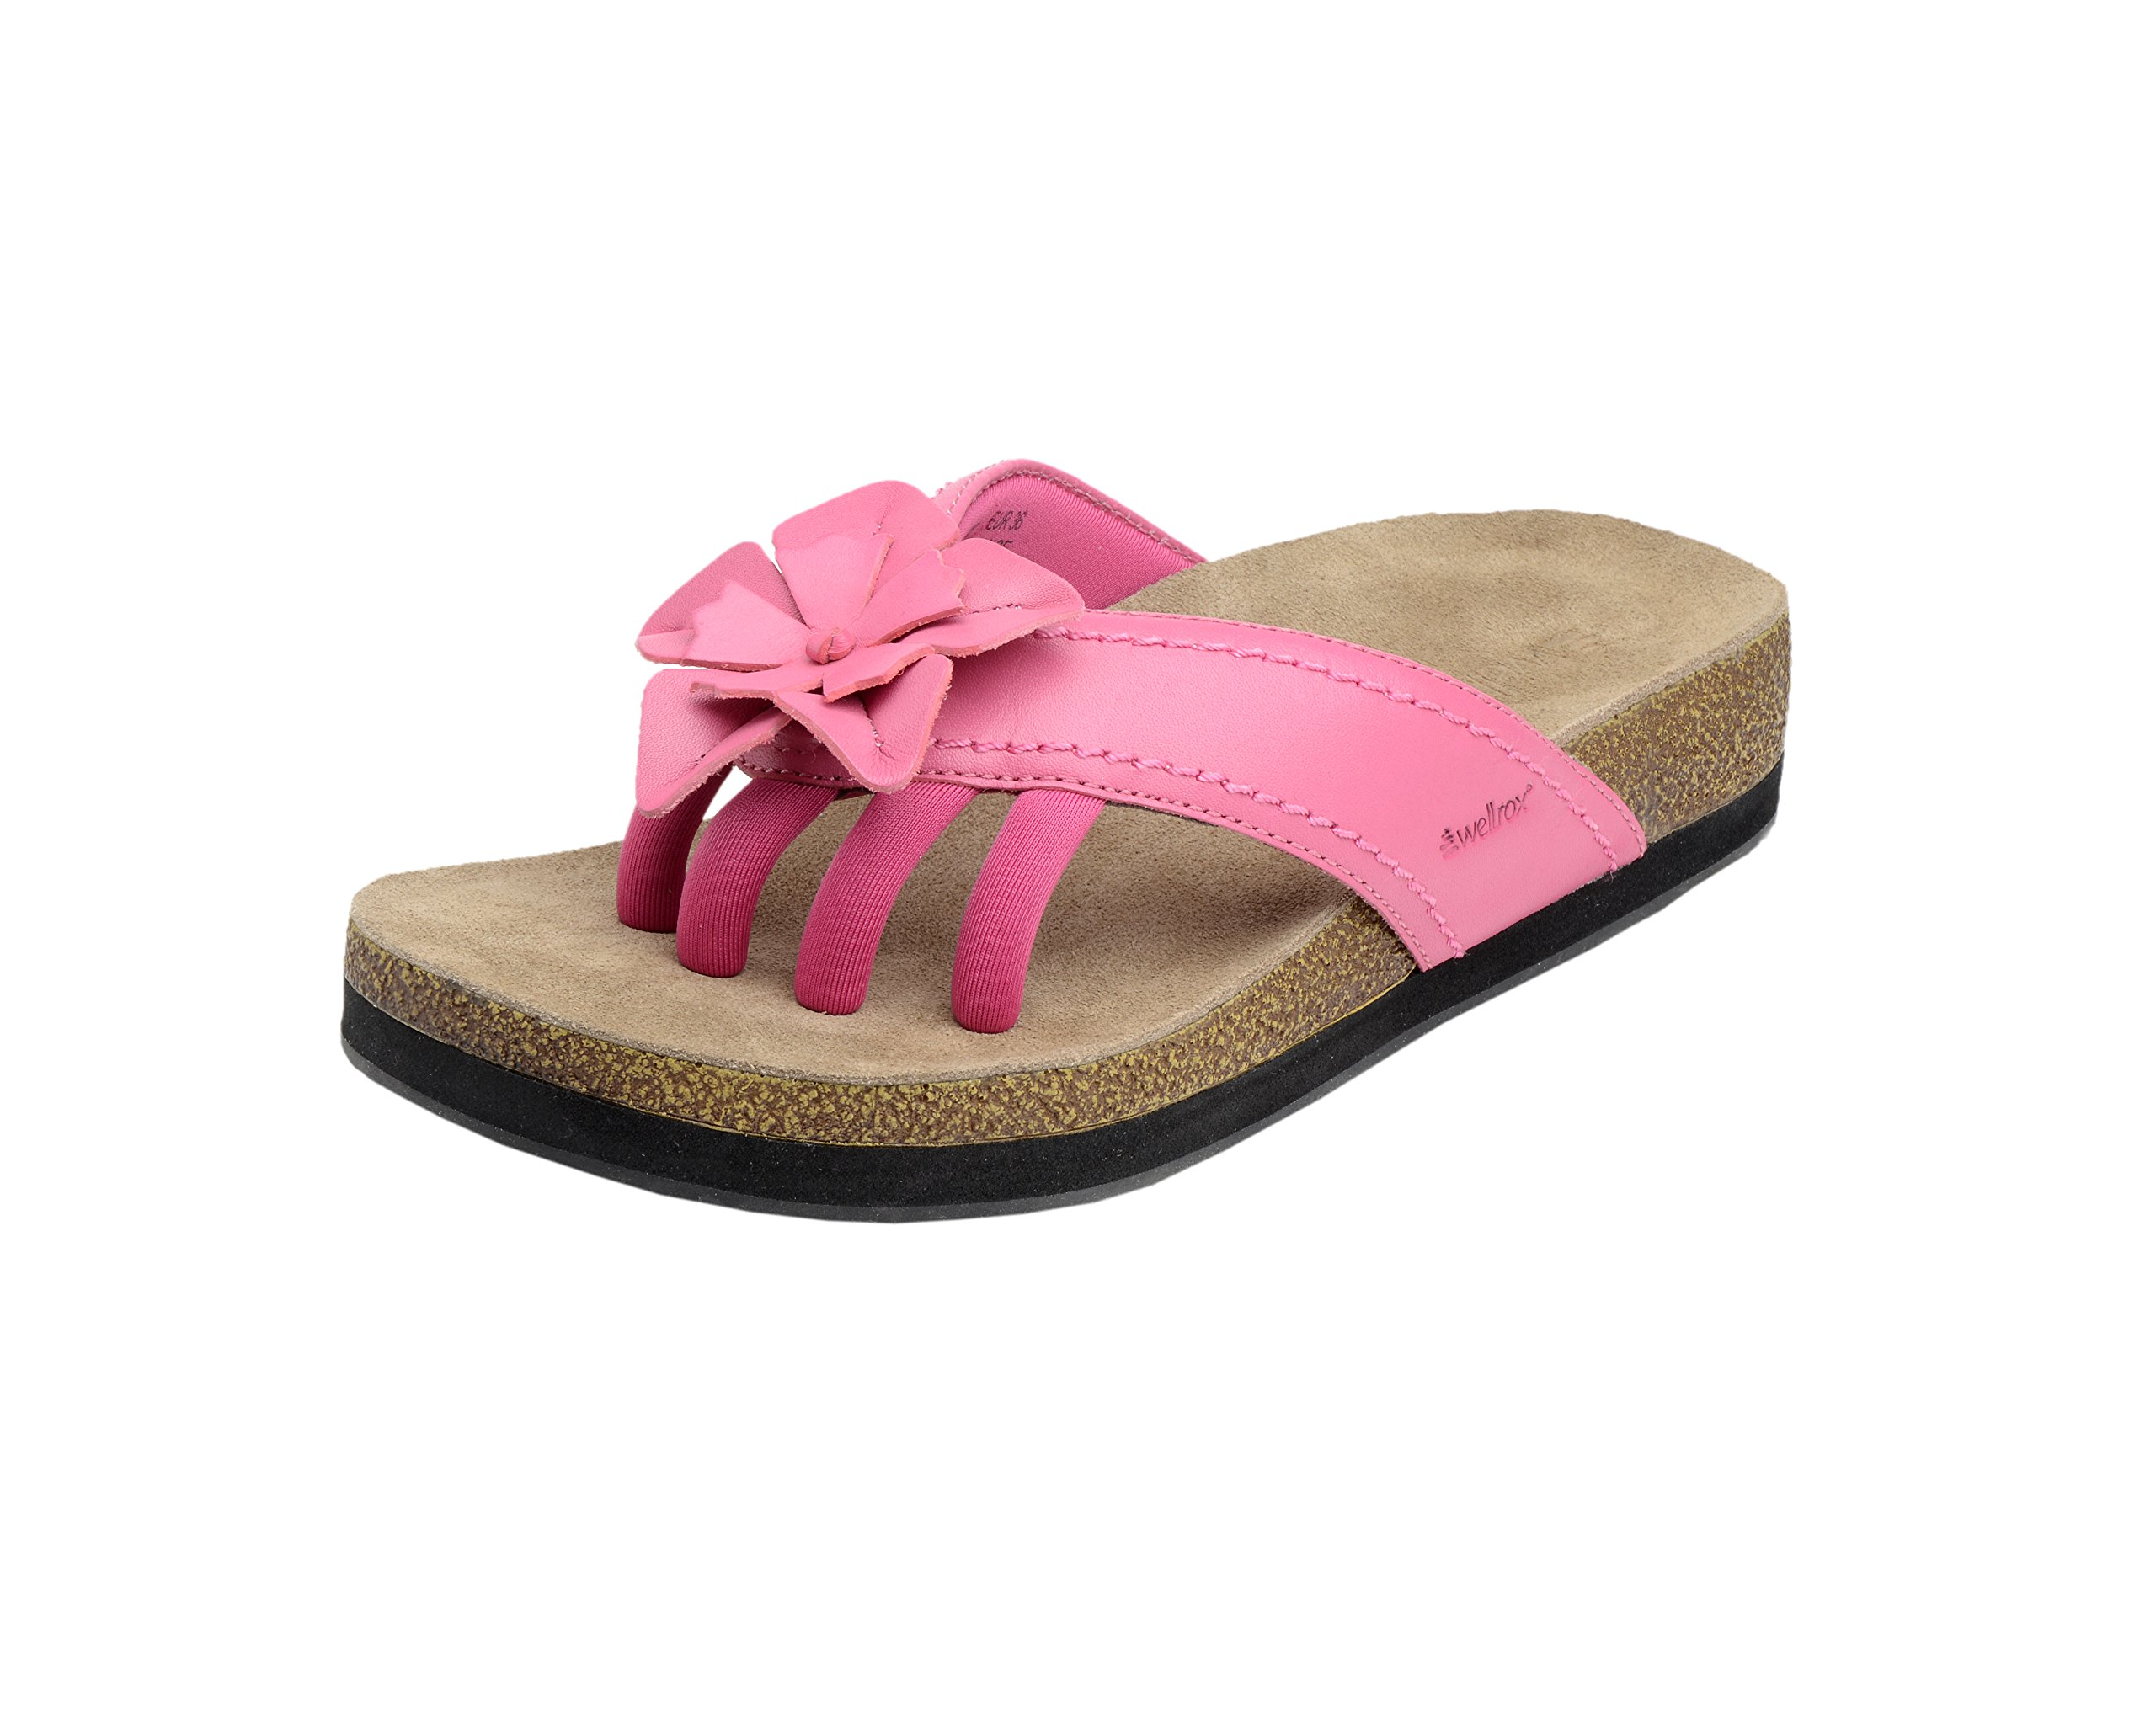 Wellrox Women's Terra-Chloe Hot Pink Casual Sandal 11 by Wellrox (Image #1)